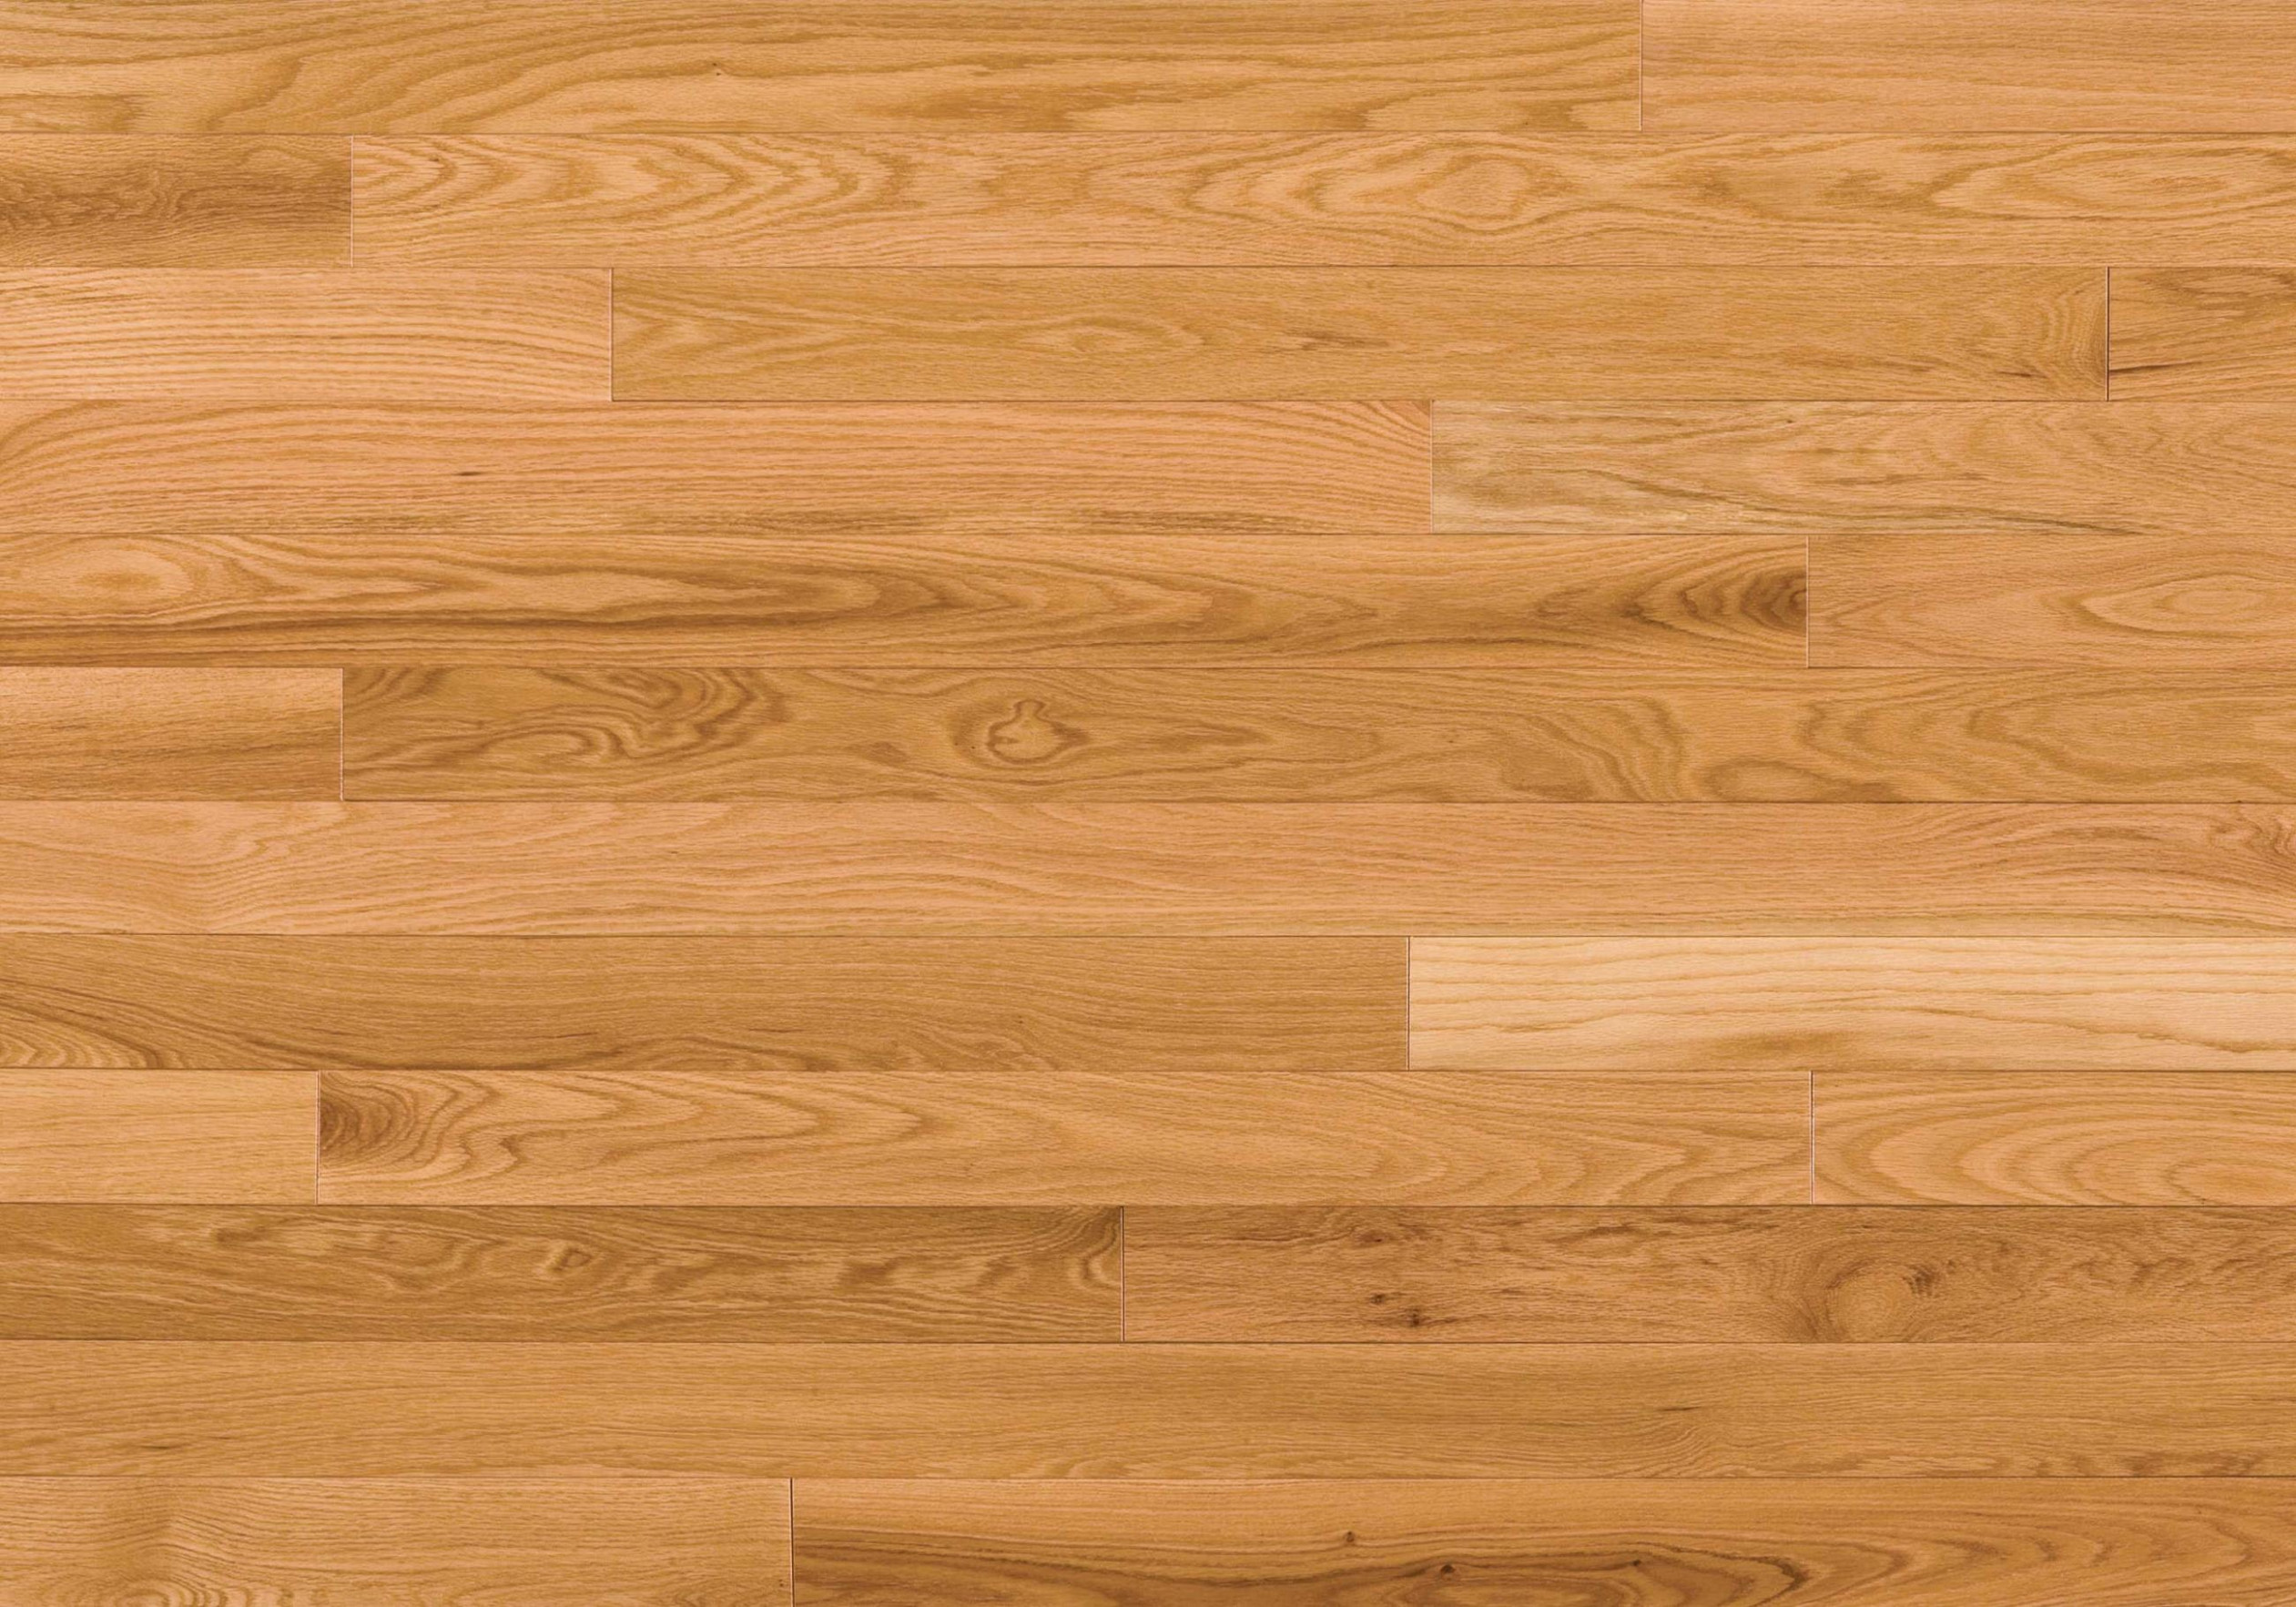 Wood Floor Texture Sweet Design Hardwood Floors 36 Great Captures ...